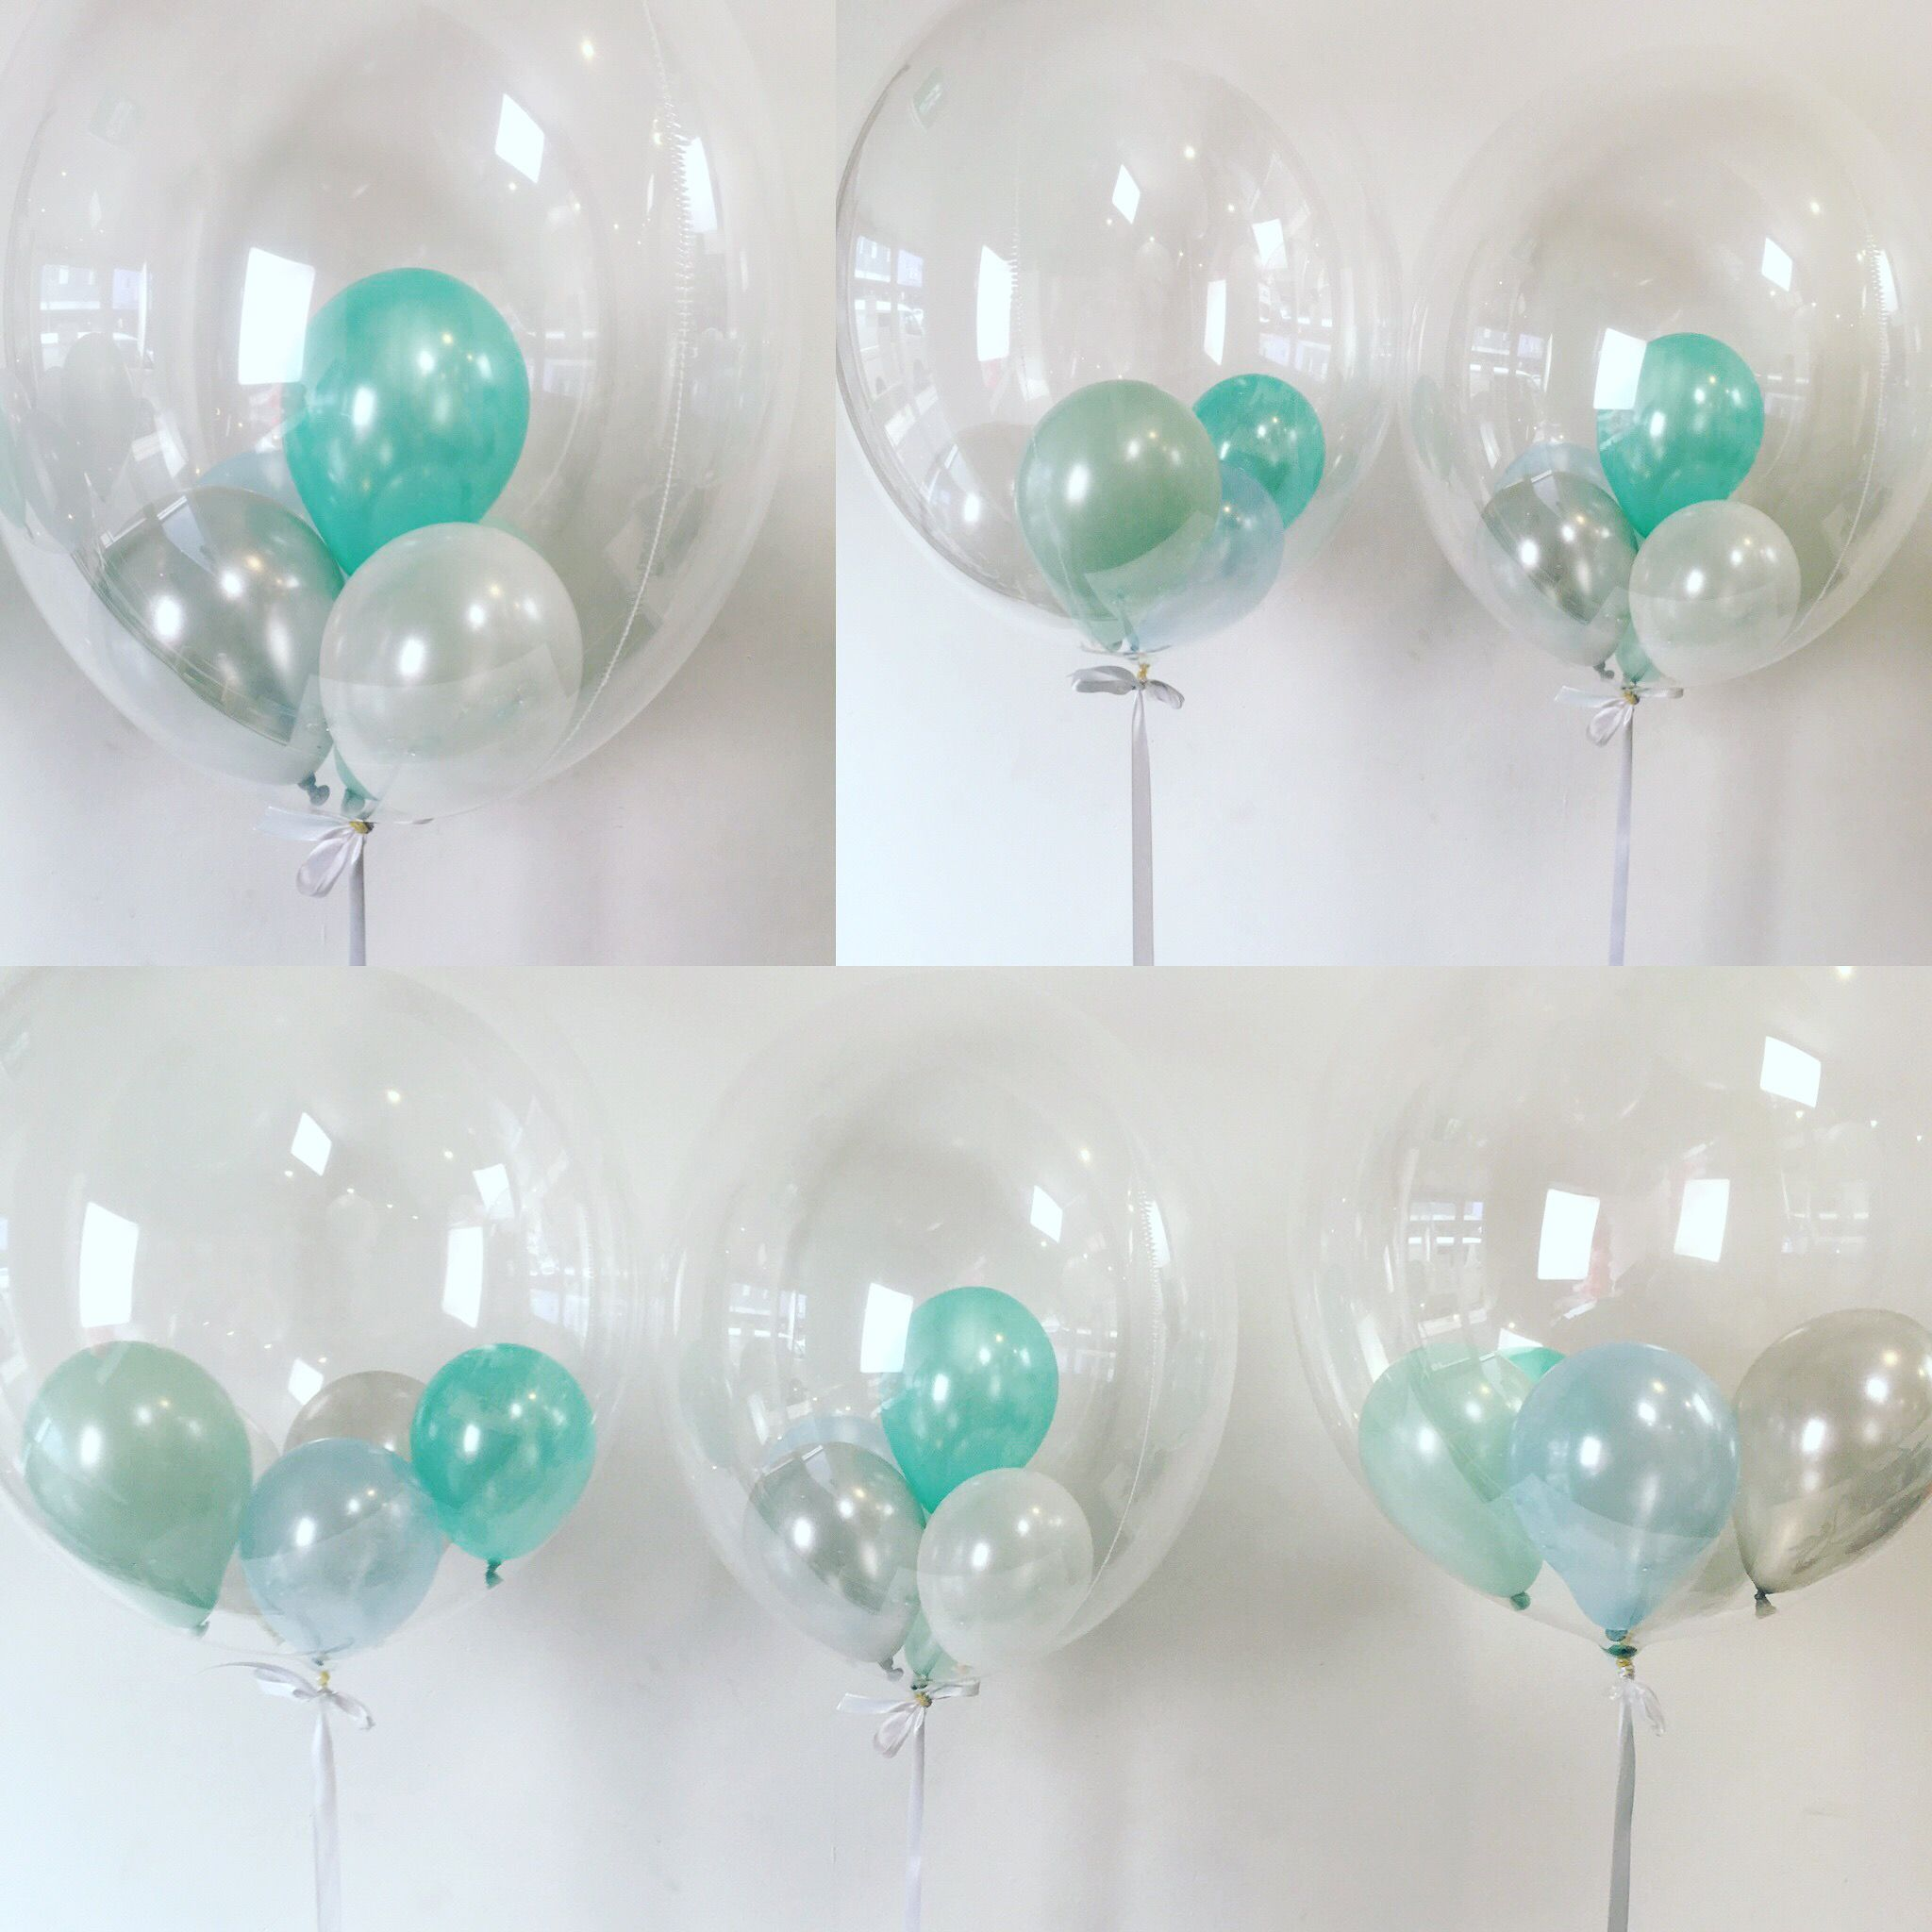 Deko In Mint Qualatex Clear Deco Bubble Filled With 5 Quot In Mint Sea